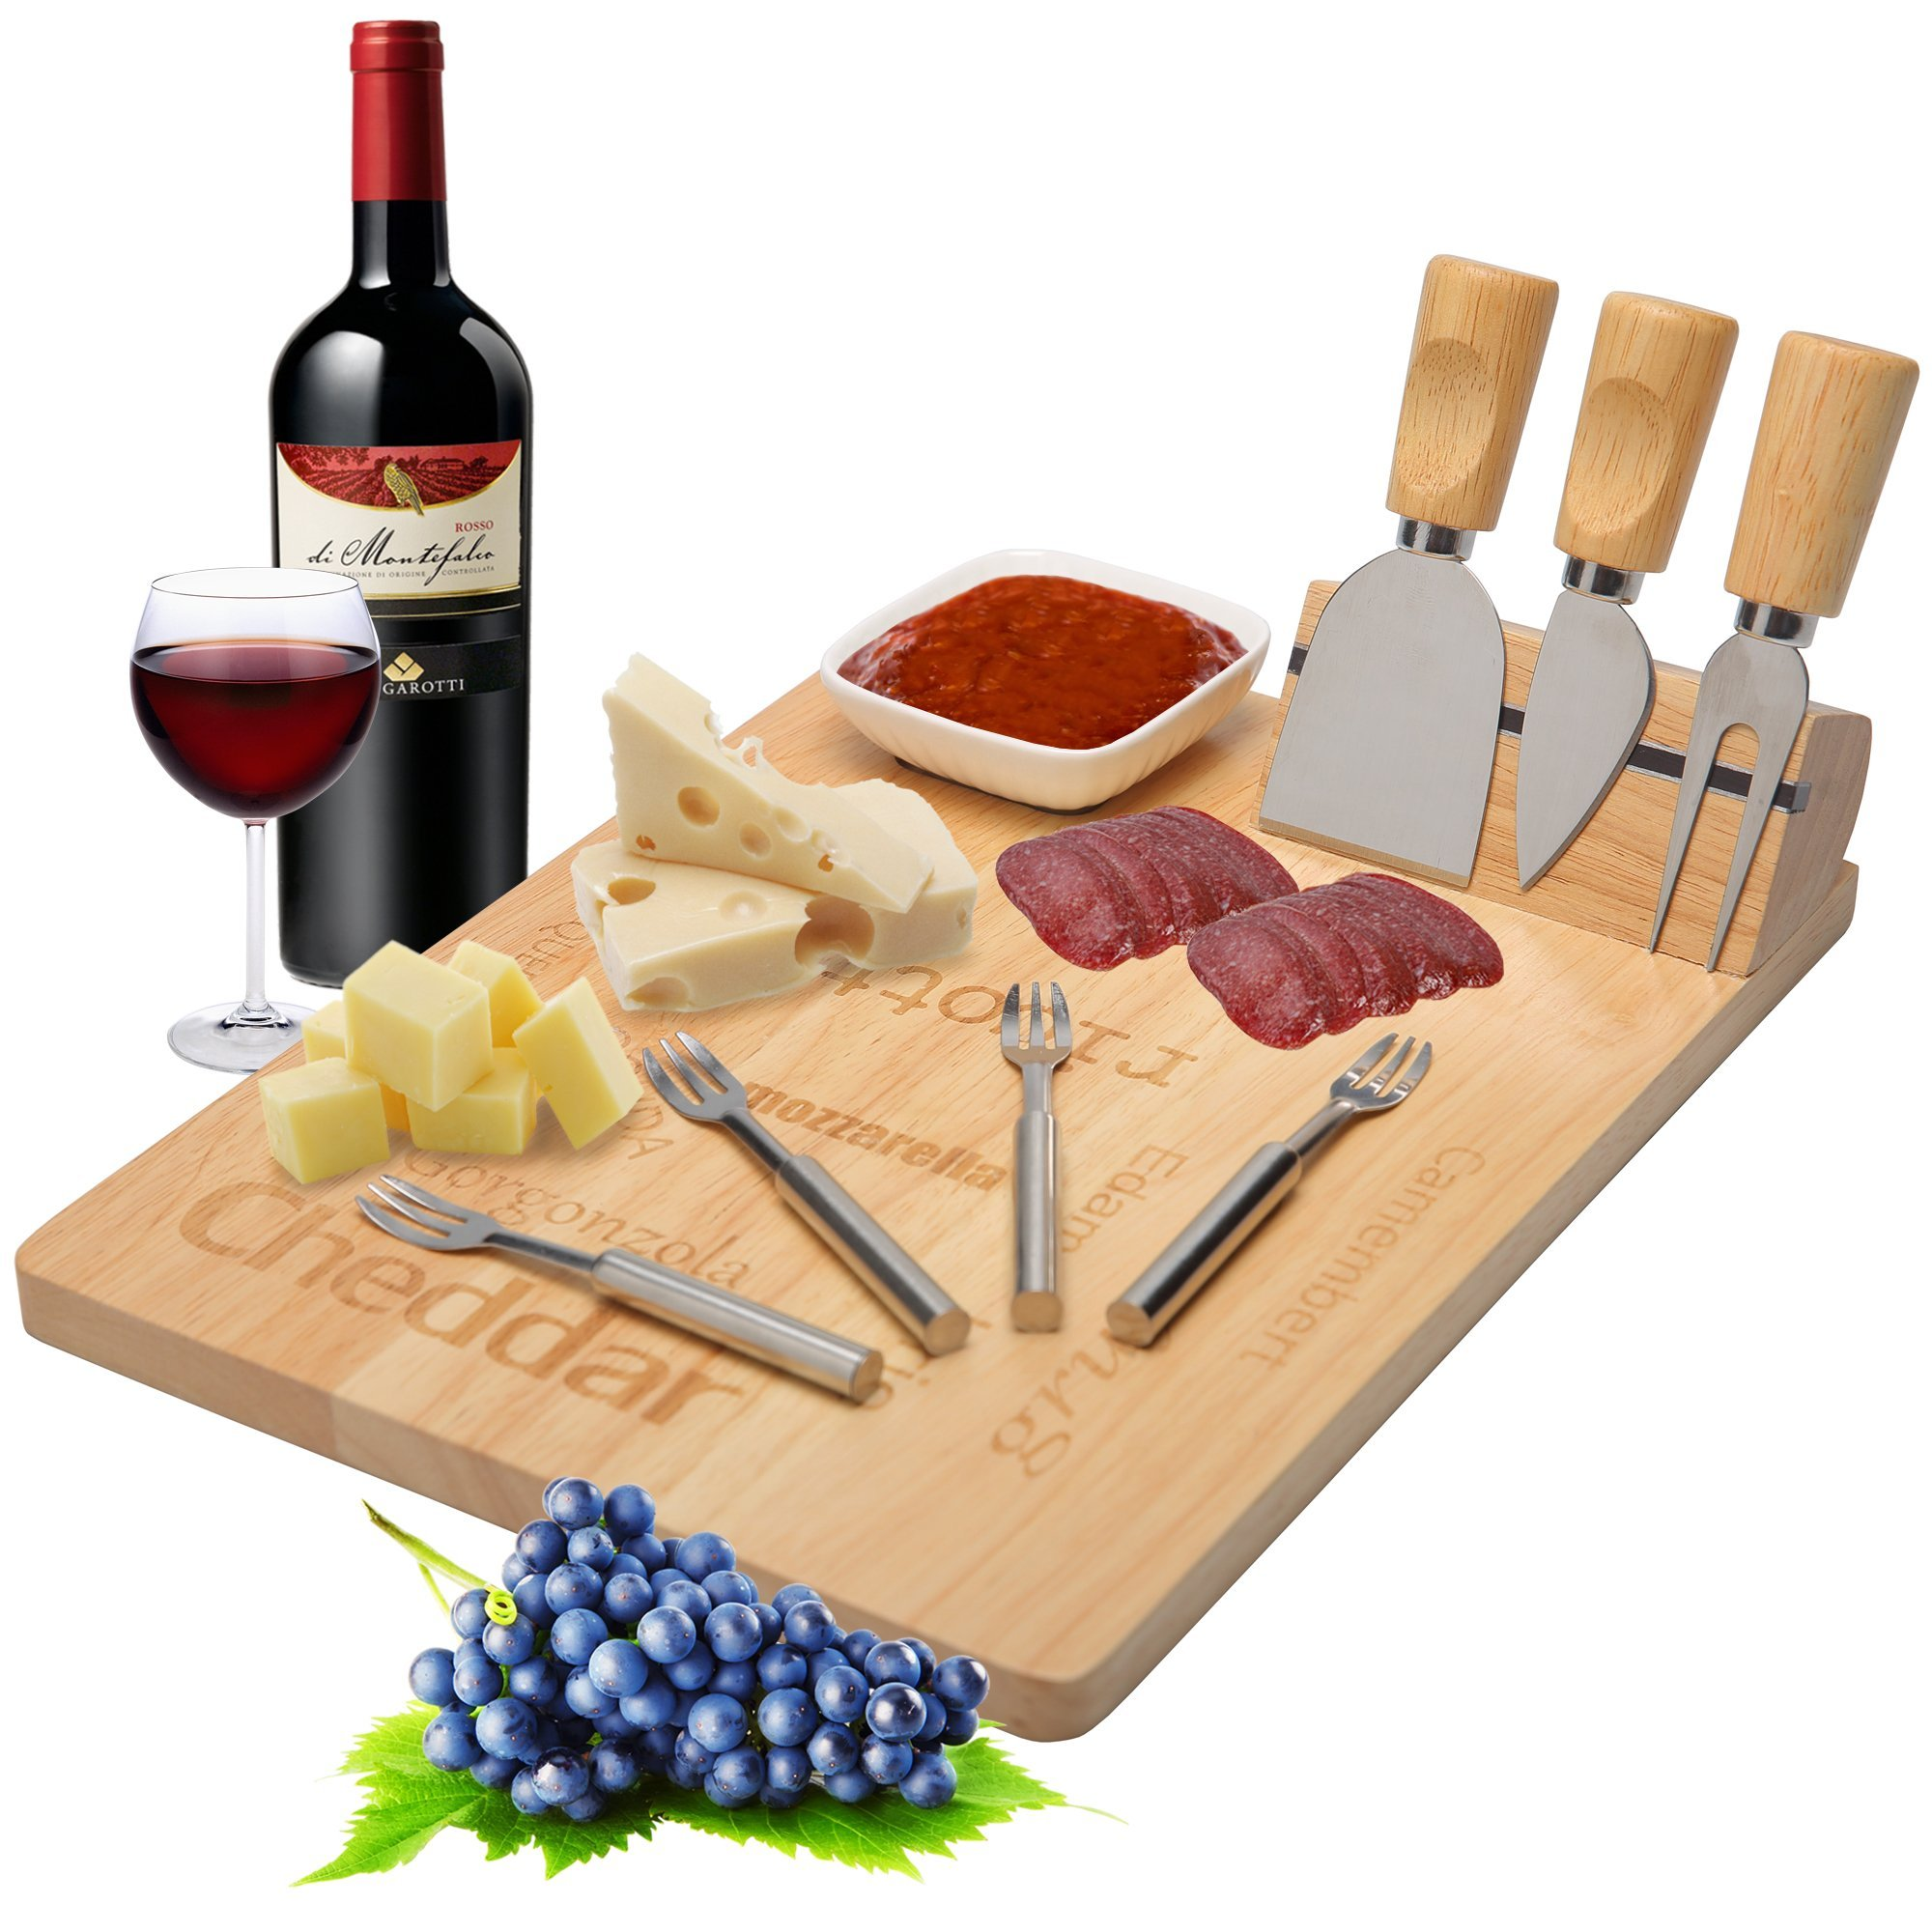 Cheese Board Set - Charcuterie Platter with Cutlery Knives Slicer and Magnetic Support Perfect for Friends and Family Gathering